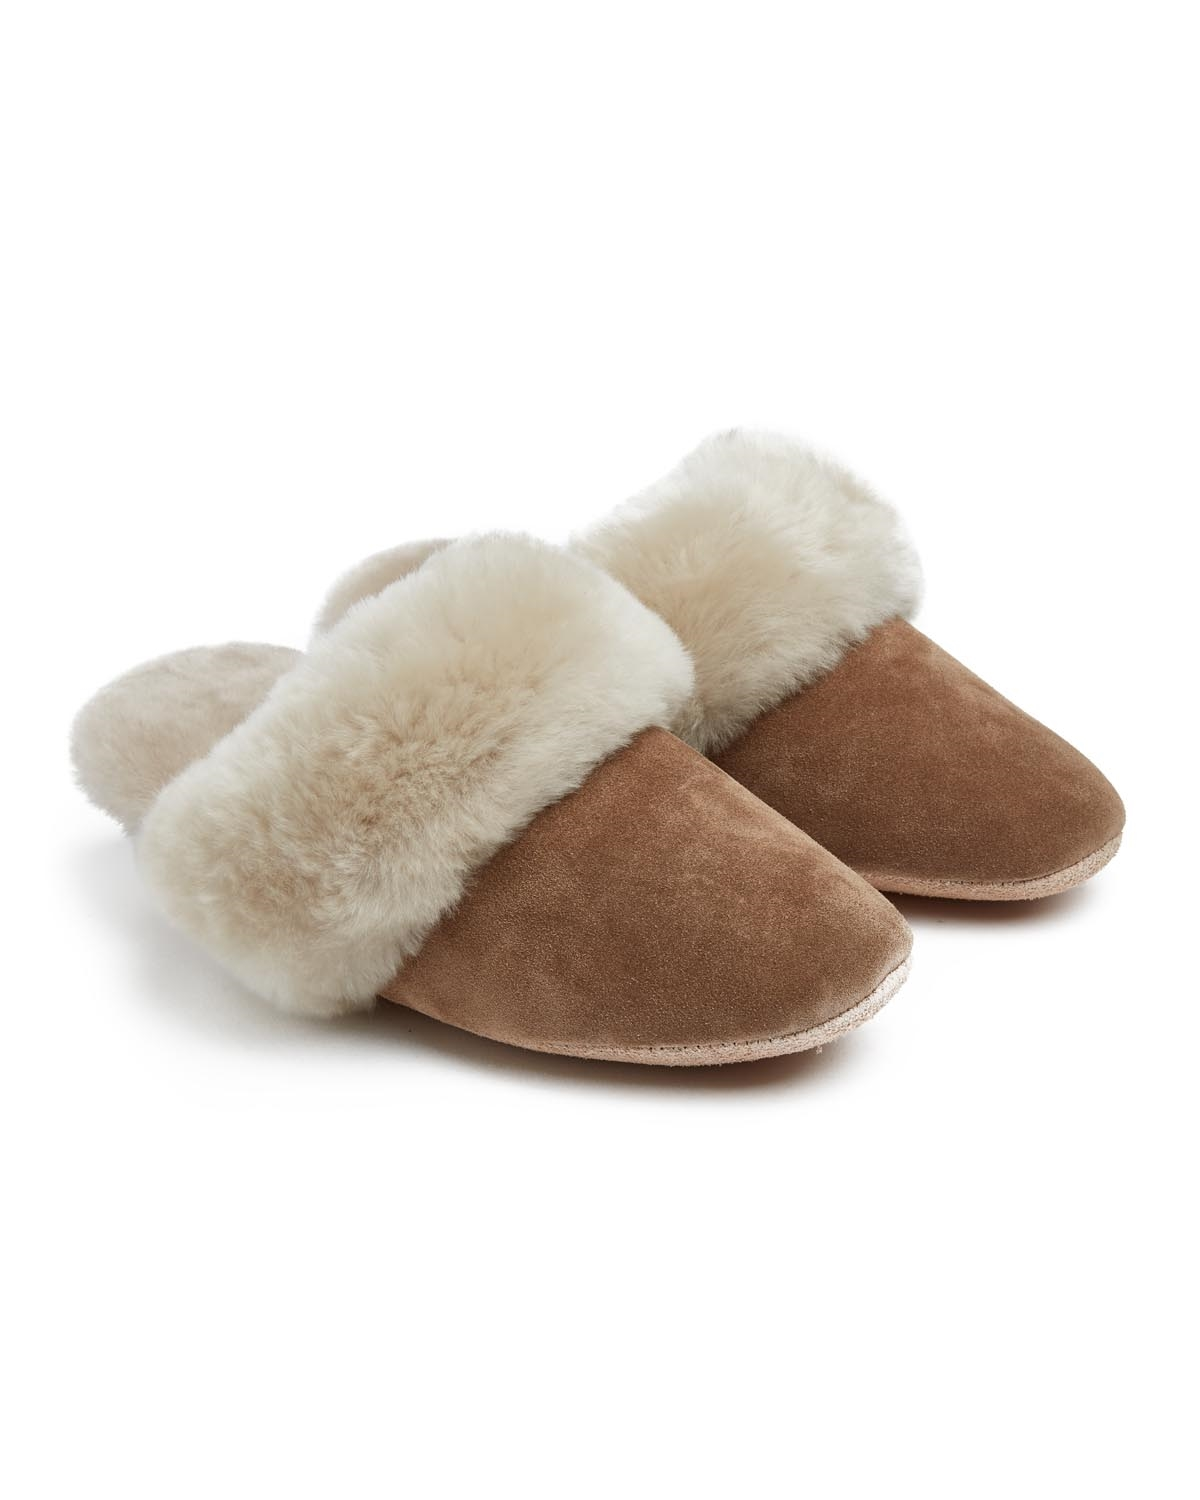 Ladies Moffat Slipper - Size 9 - Mole